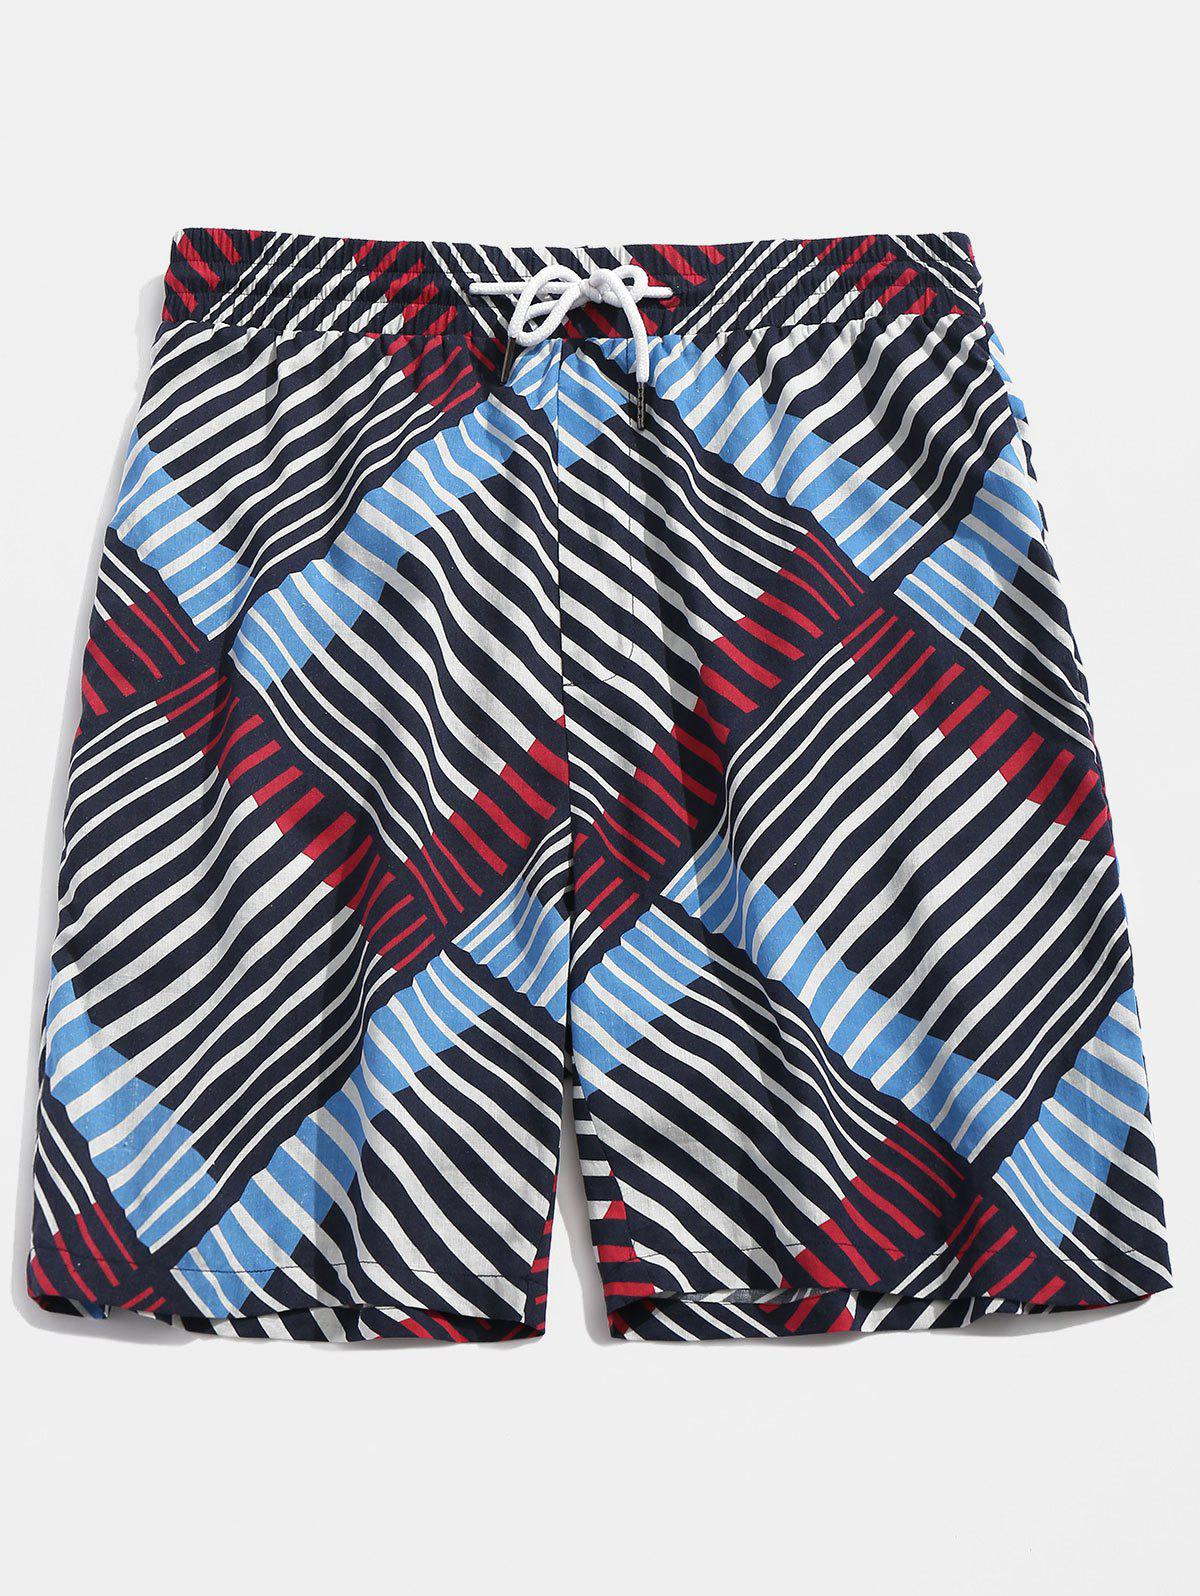 Stripe Print Drawstring Board Shorts - COLORMIX XL